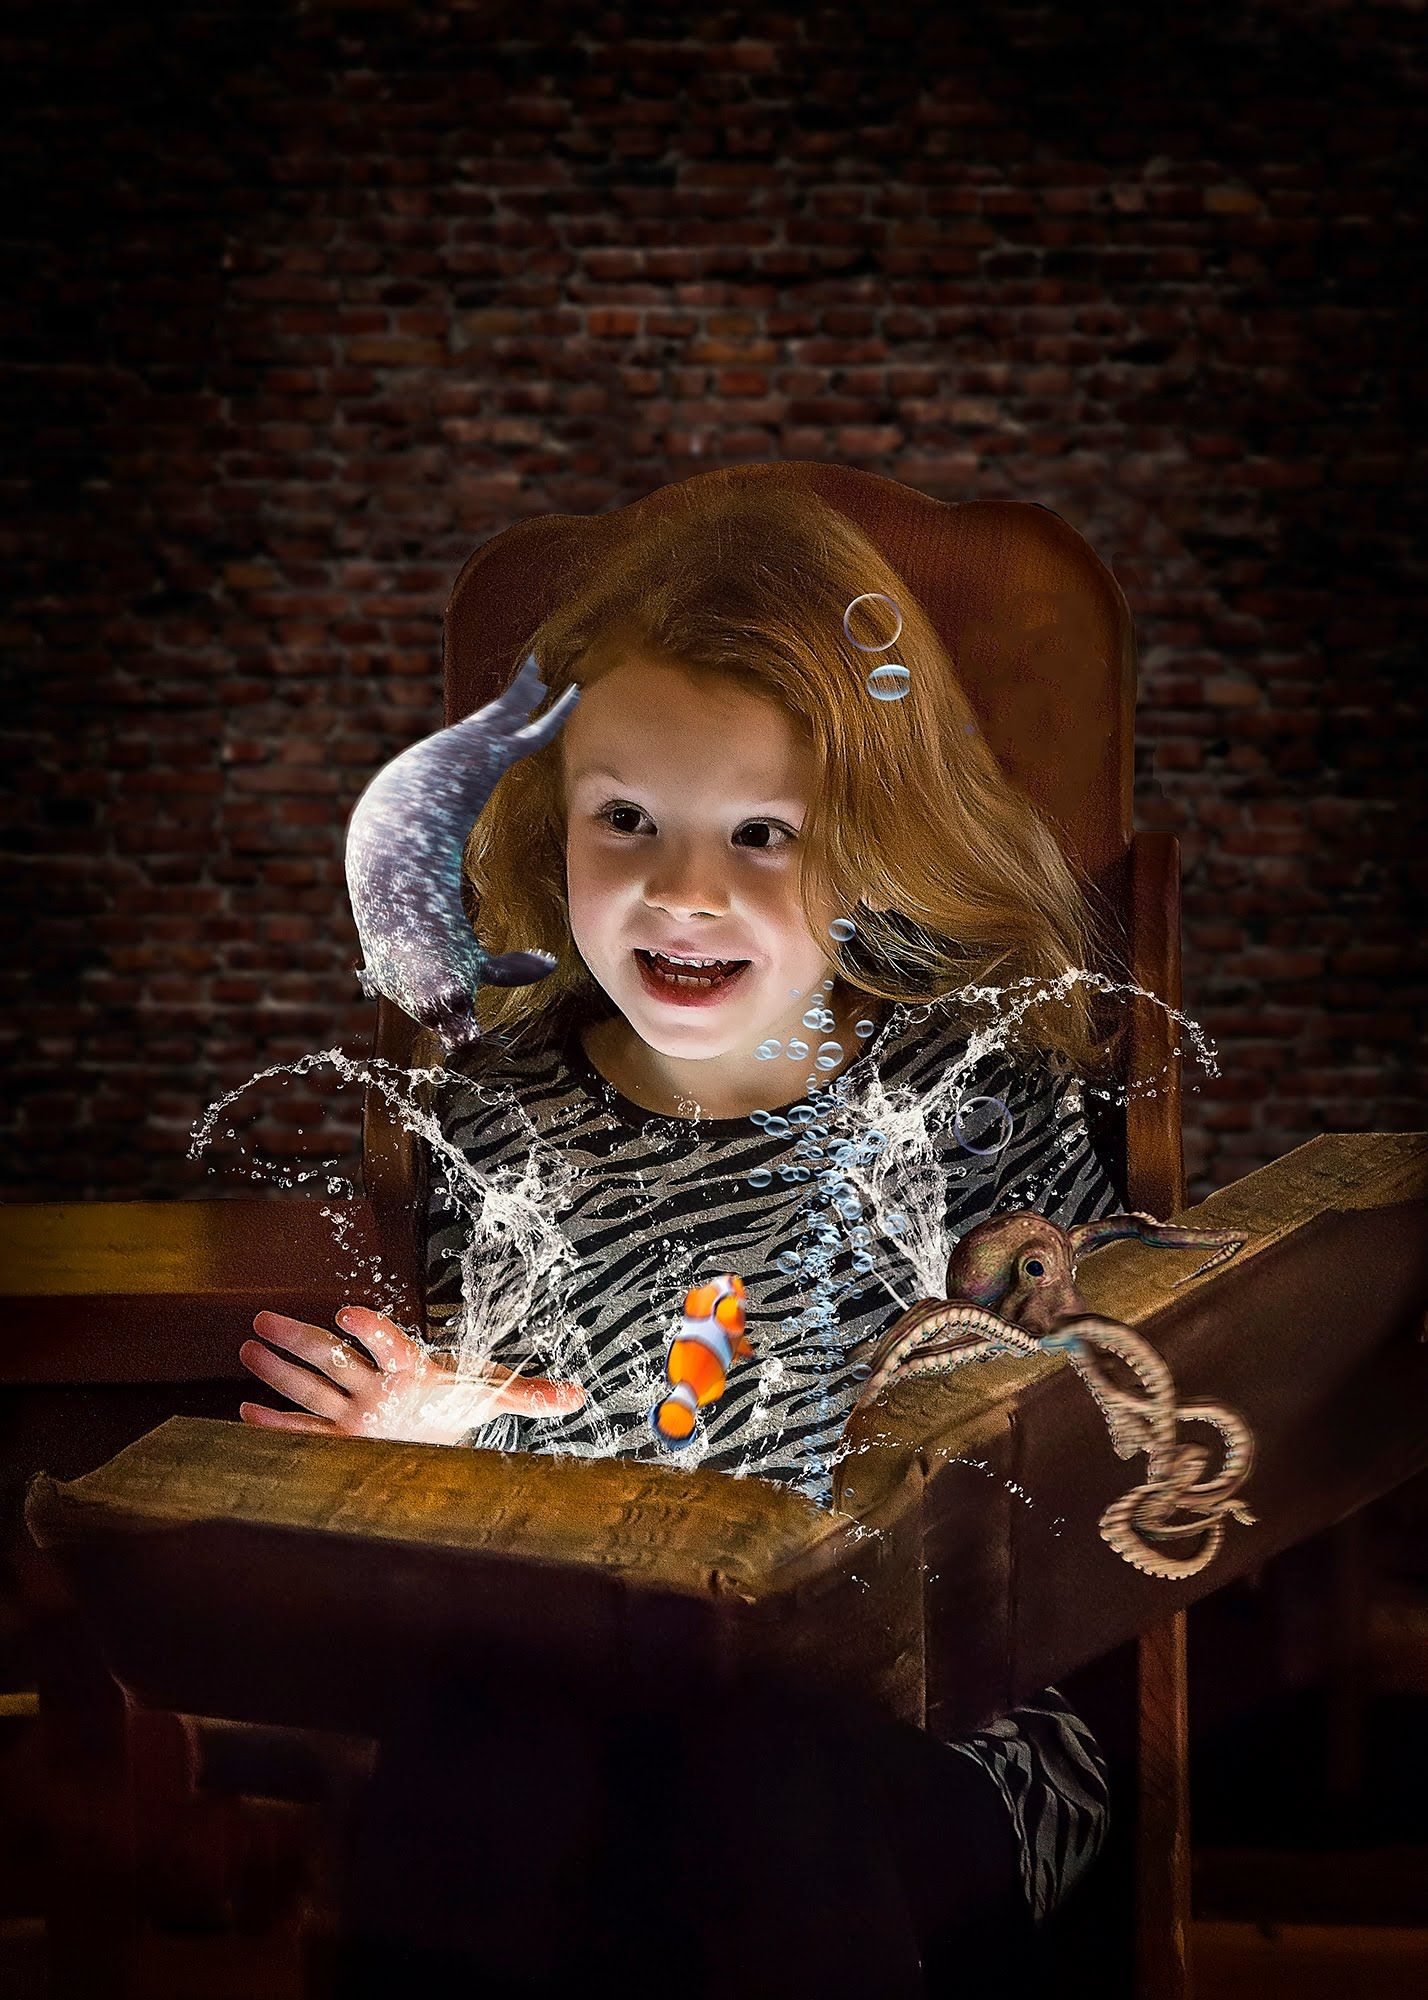 Magical book comes to life in photoshop tutorial tutorials magical book comes to life in photoshop tutorial baditri Gallery